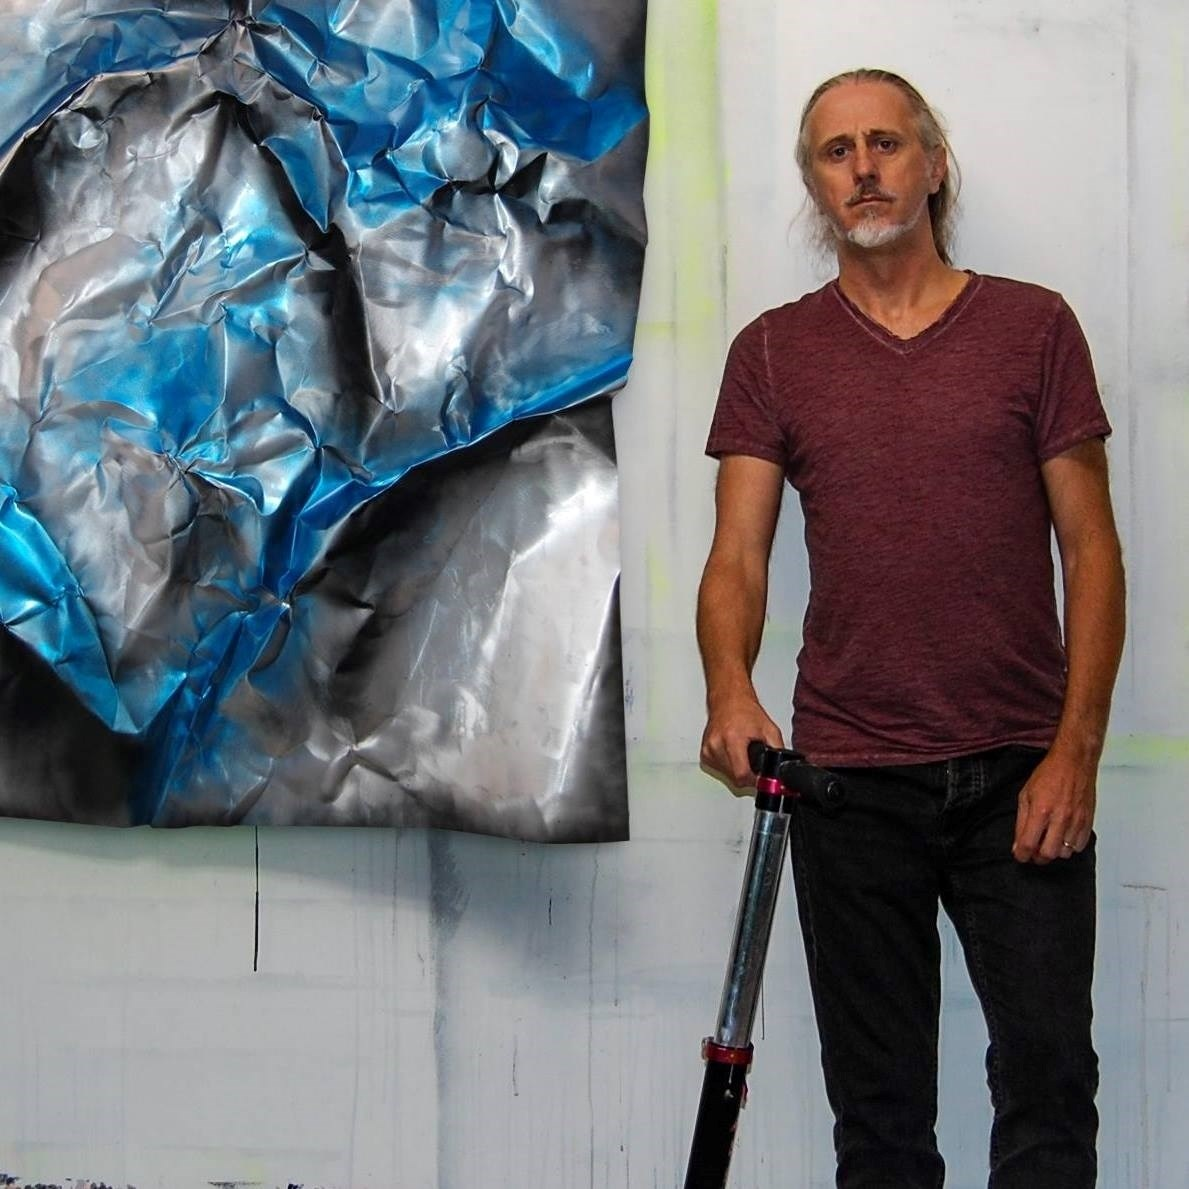 Paulo Canilhas, painter at zet gallery